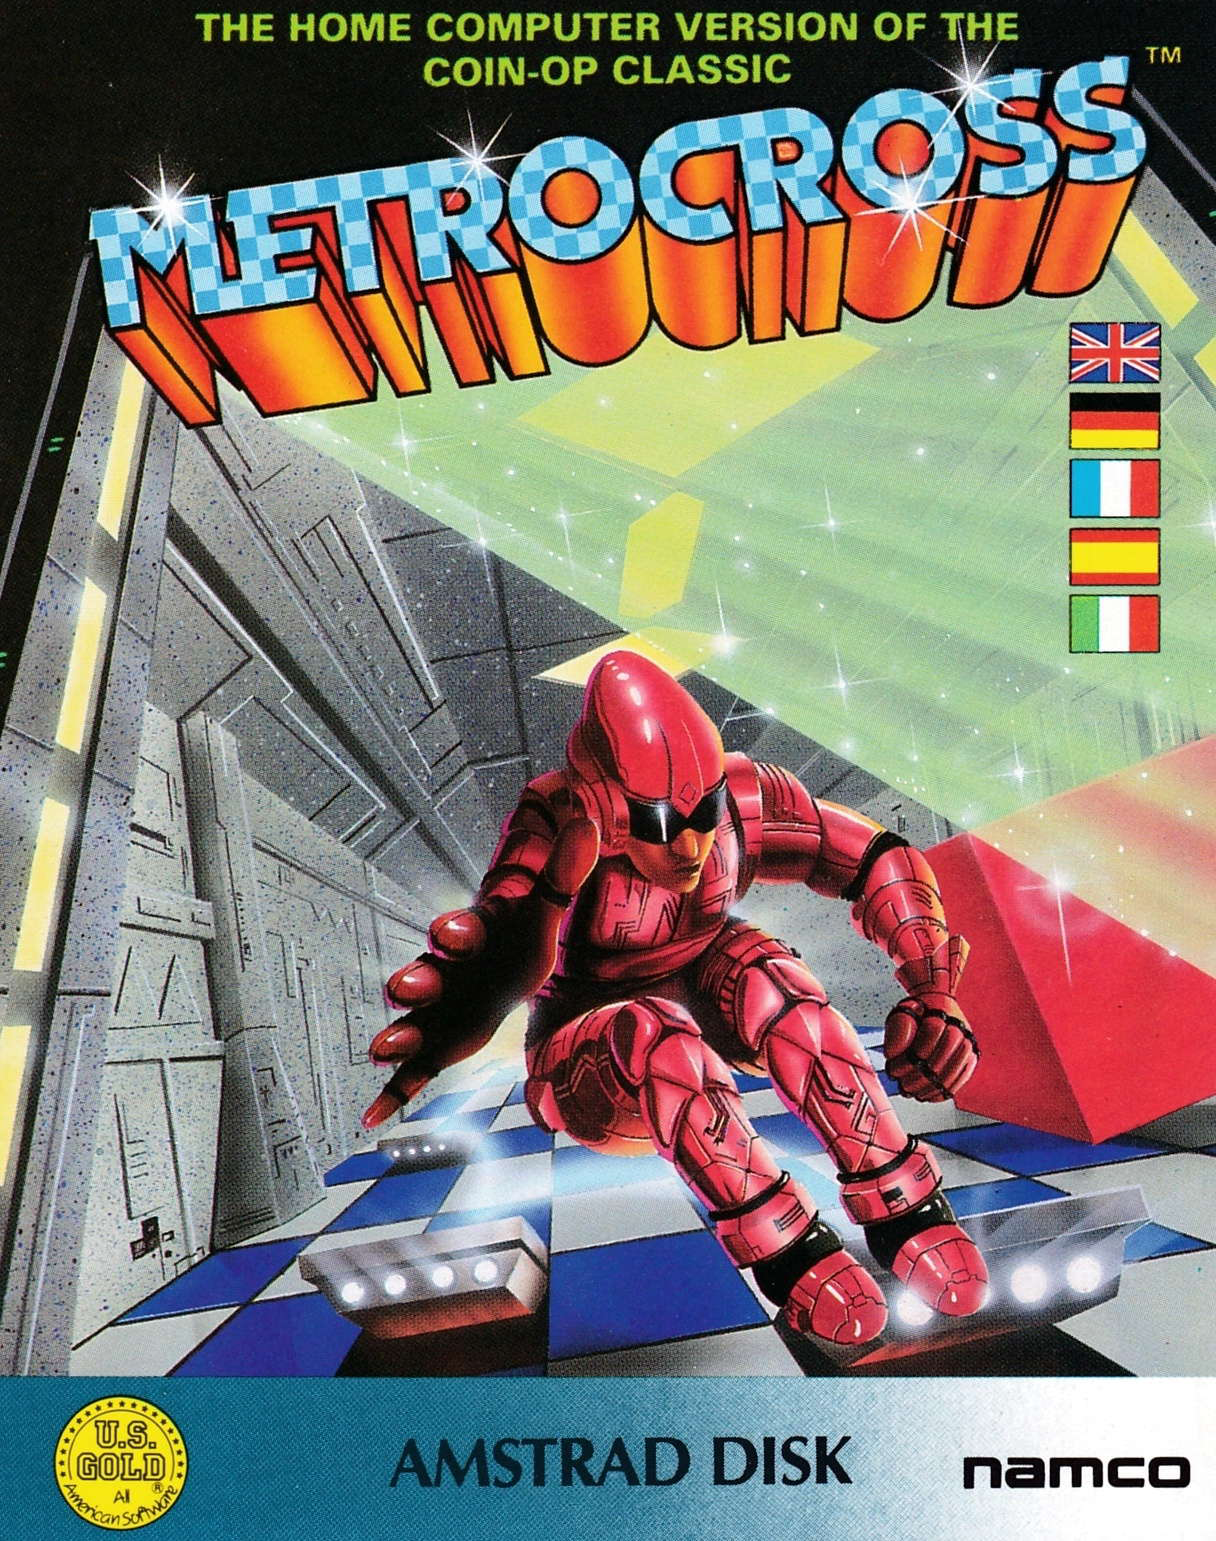 cover of the Amstrad CPC game Metro Cross  by GameBase CPC